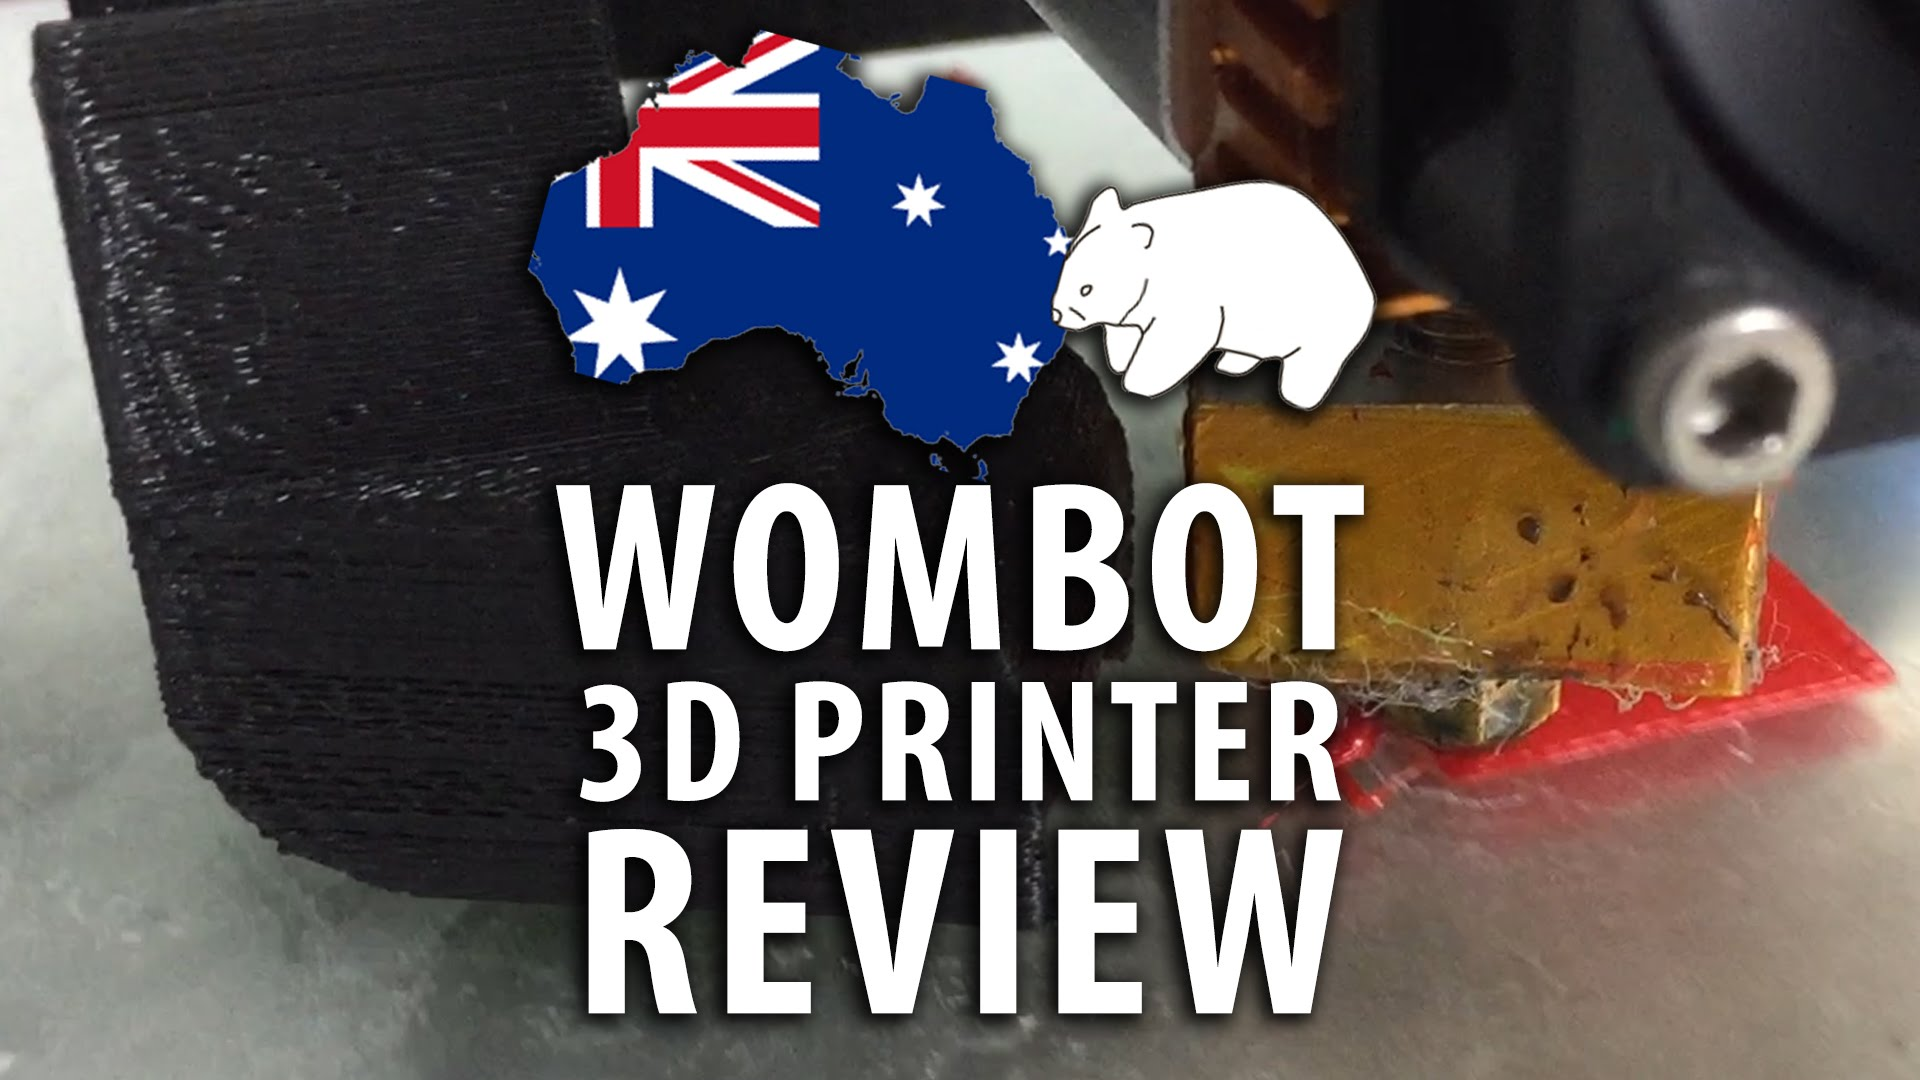 3D Printing: Wombot Exilis 3D Printer Review